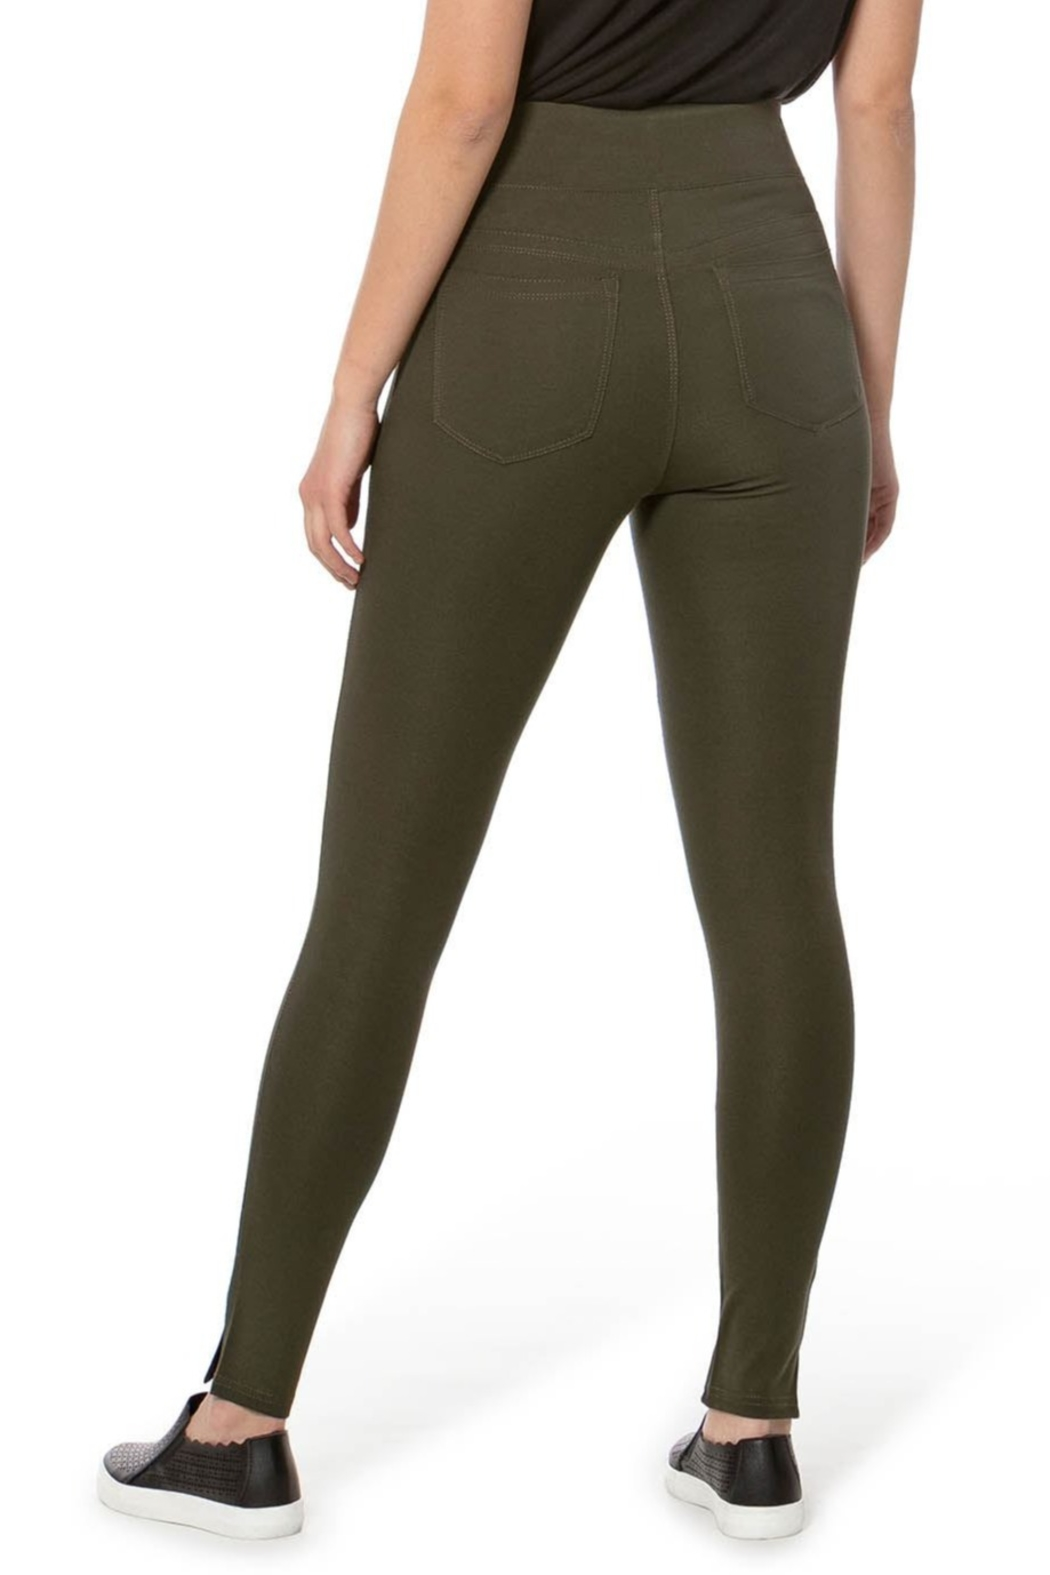 LOLA ANNA SKINNY ANKLE - Side Cropped Image